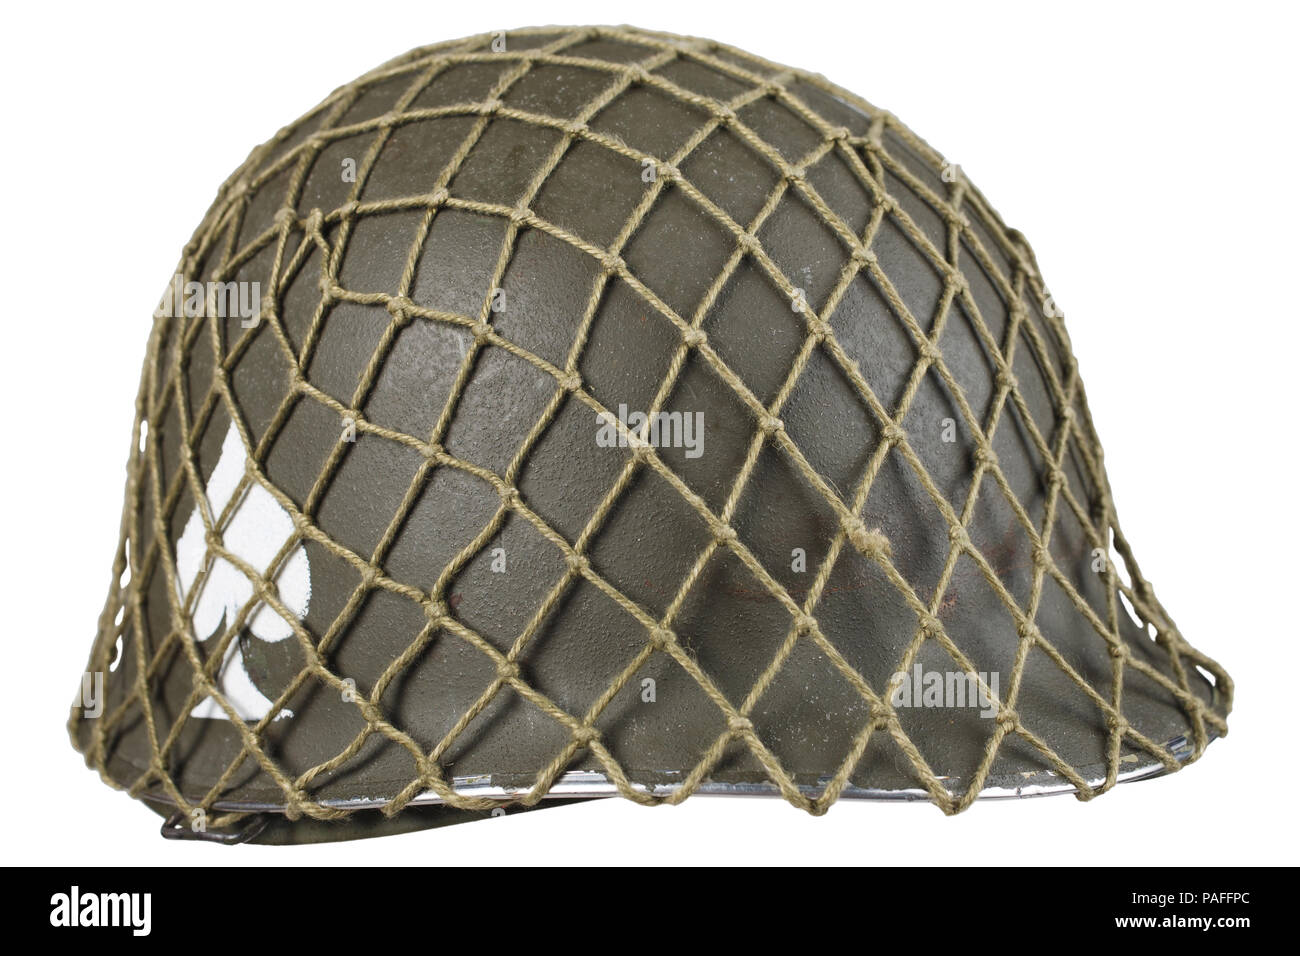 ww2 us army helmet with ace of spades emblem isolated - Stock Image